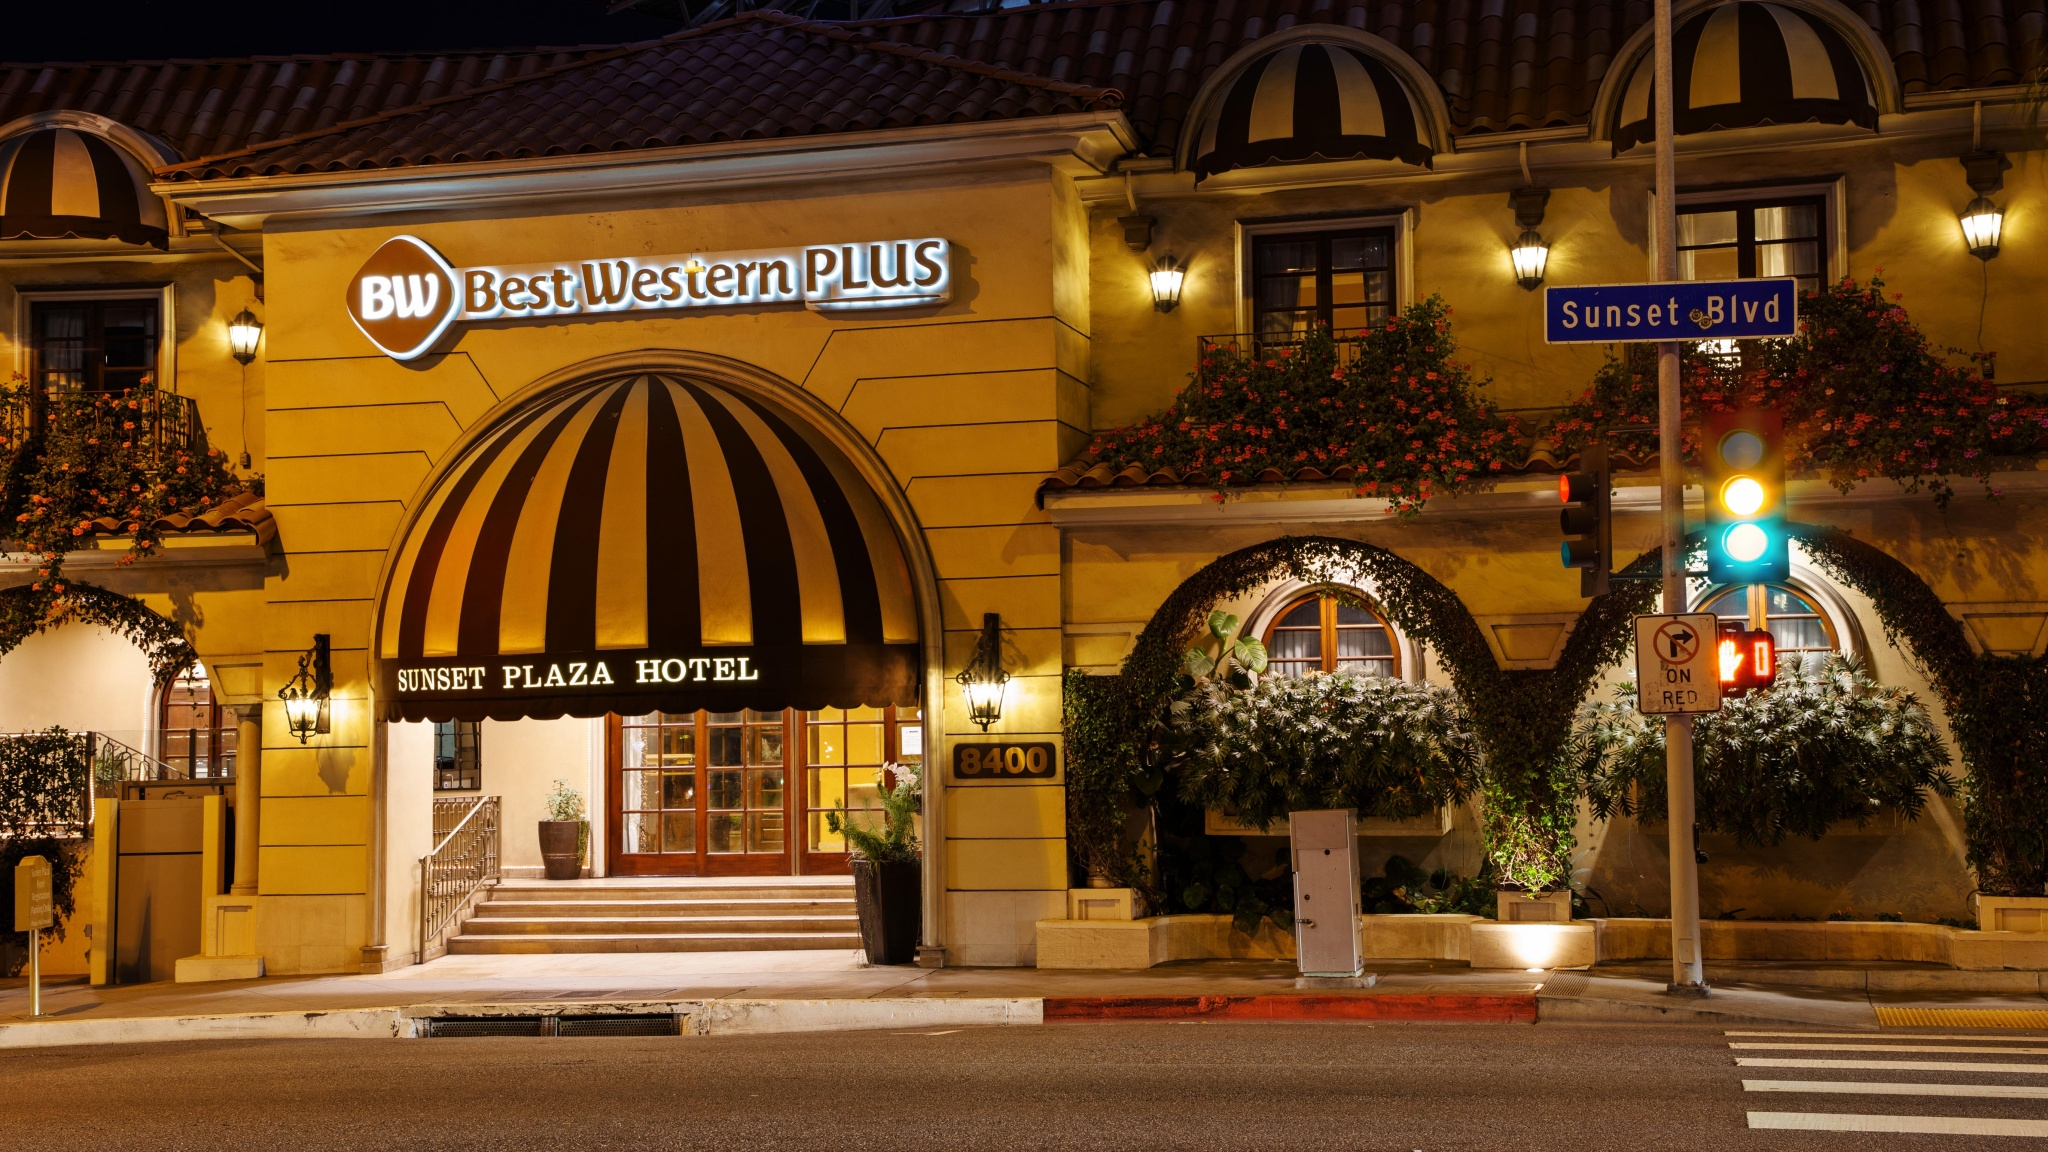 Best Western Plus Sunset Plaza Hotel | West Hollywood, CA | Gallery 7